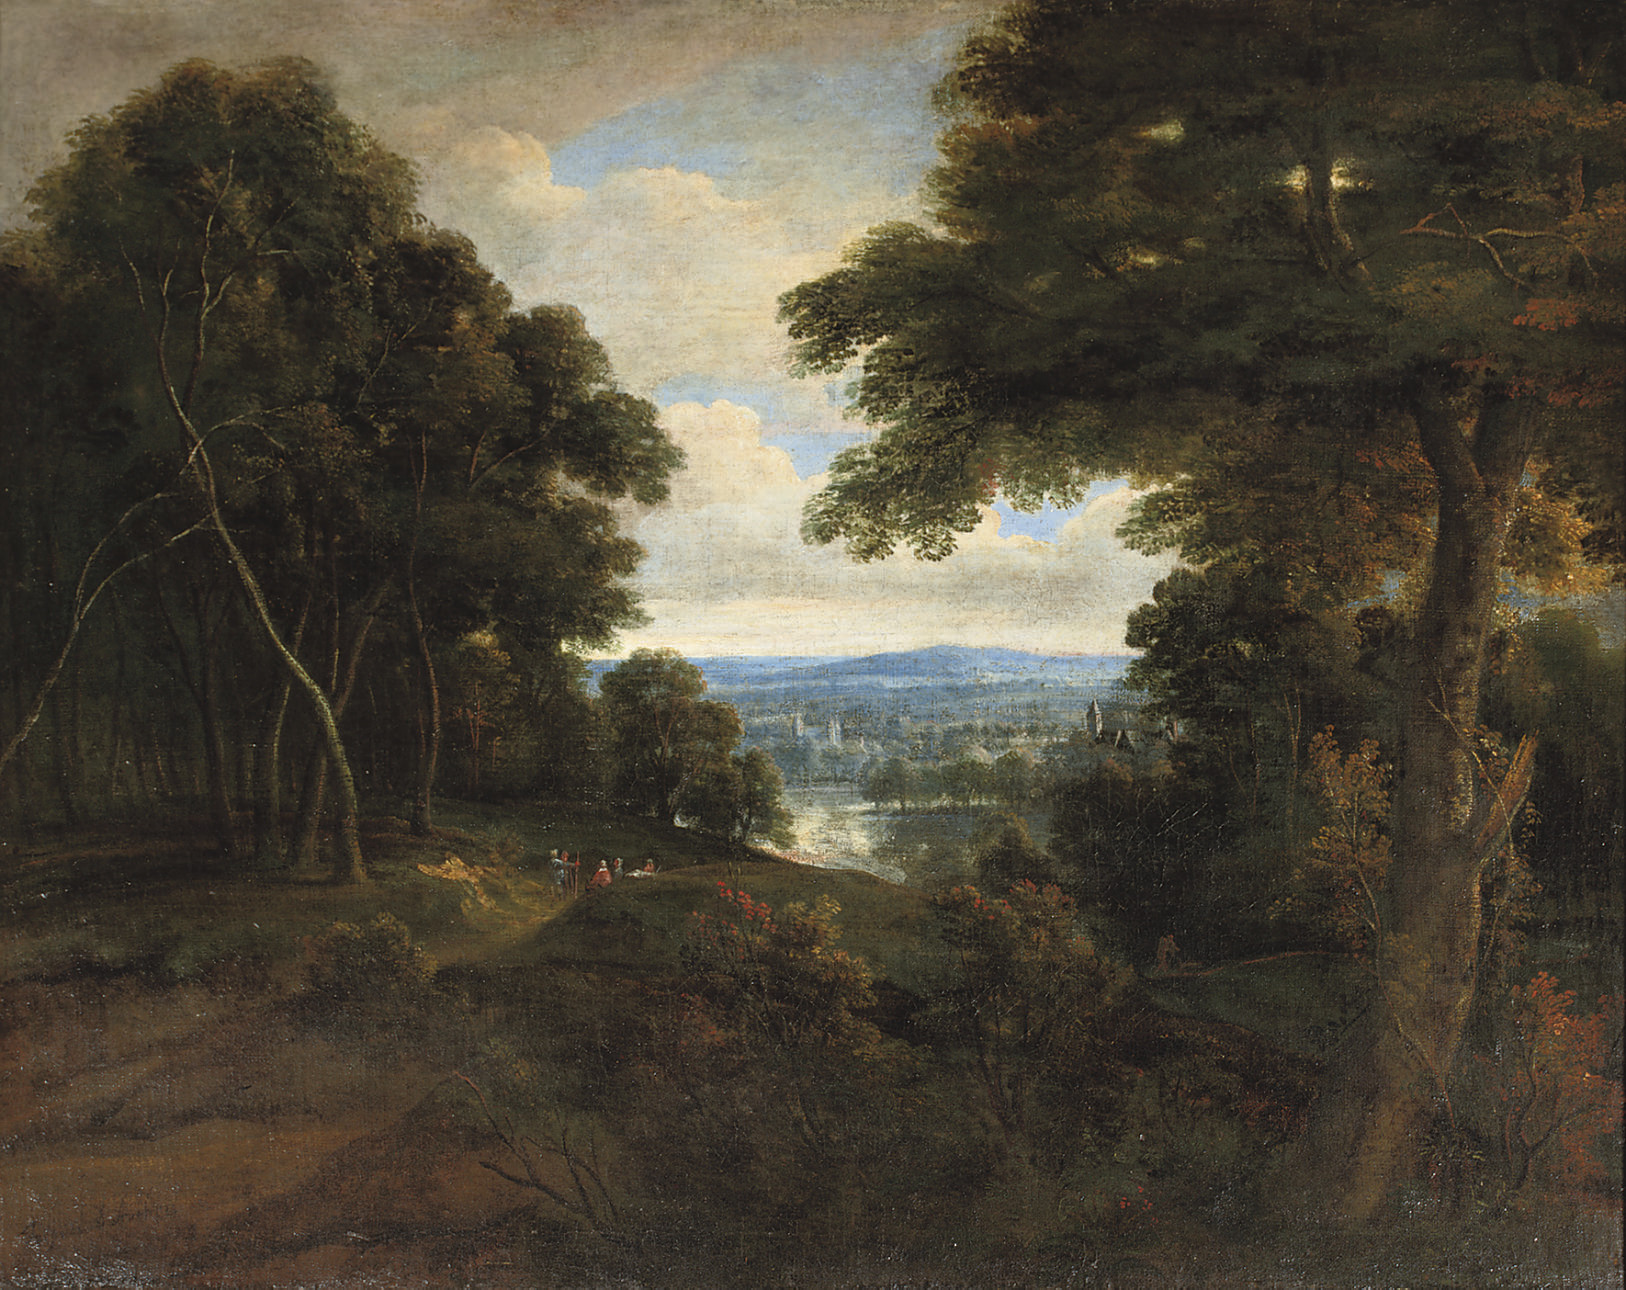 An extensive wooded landscape with travellers on a path